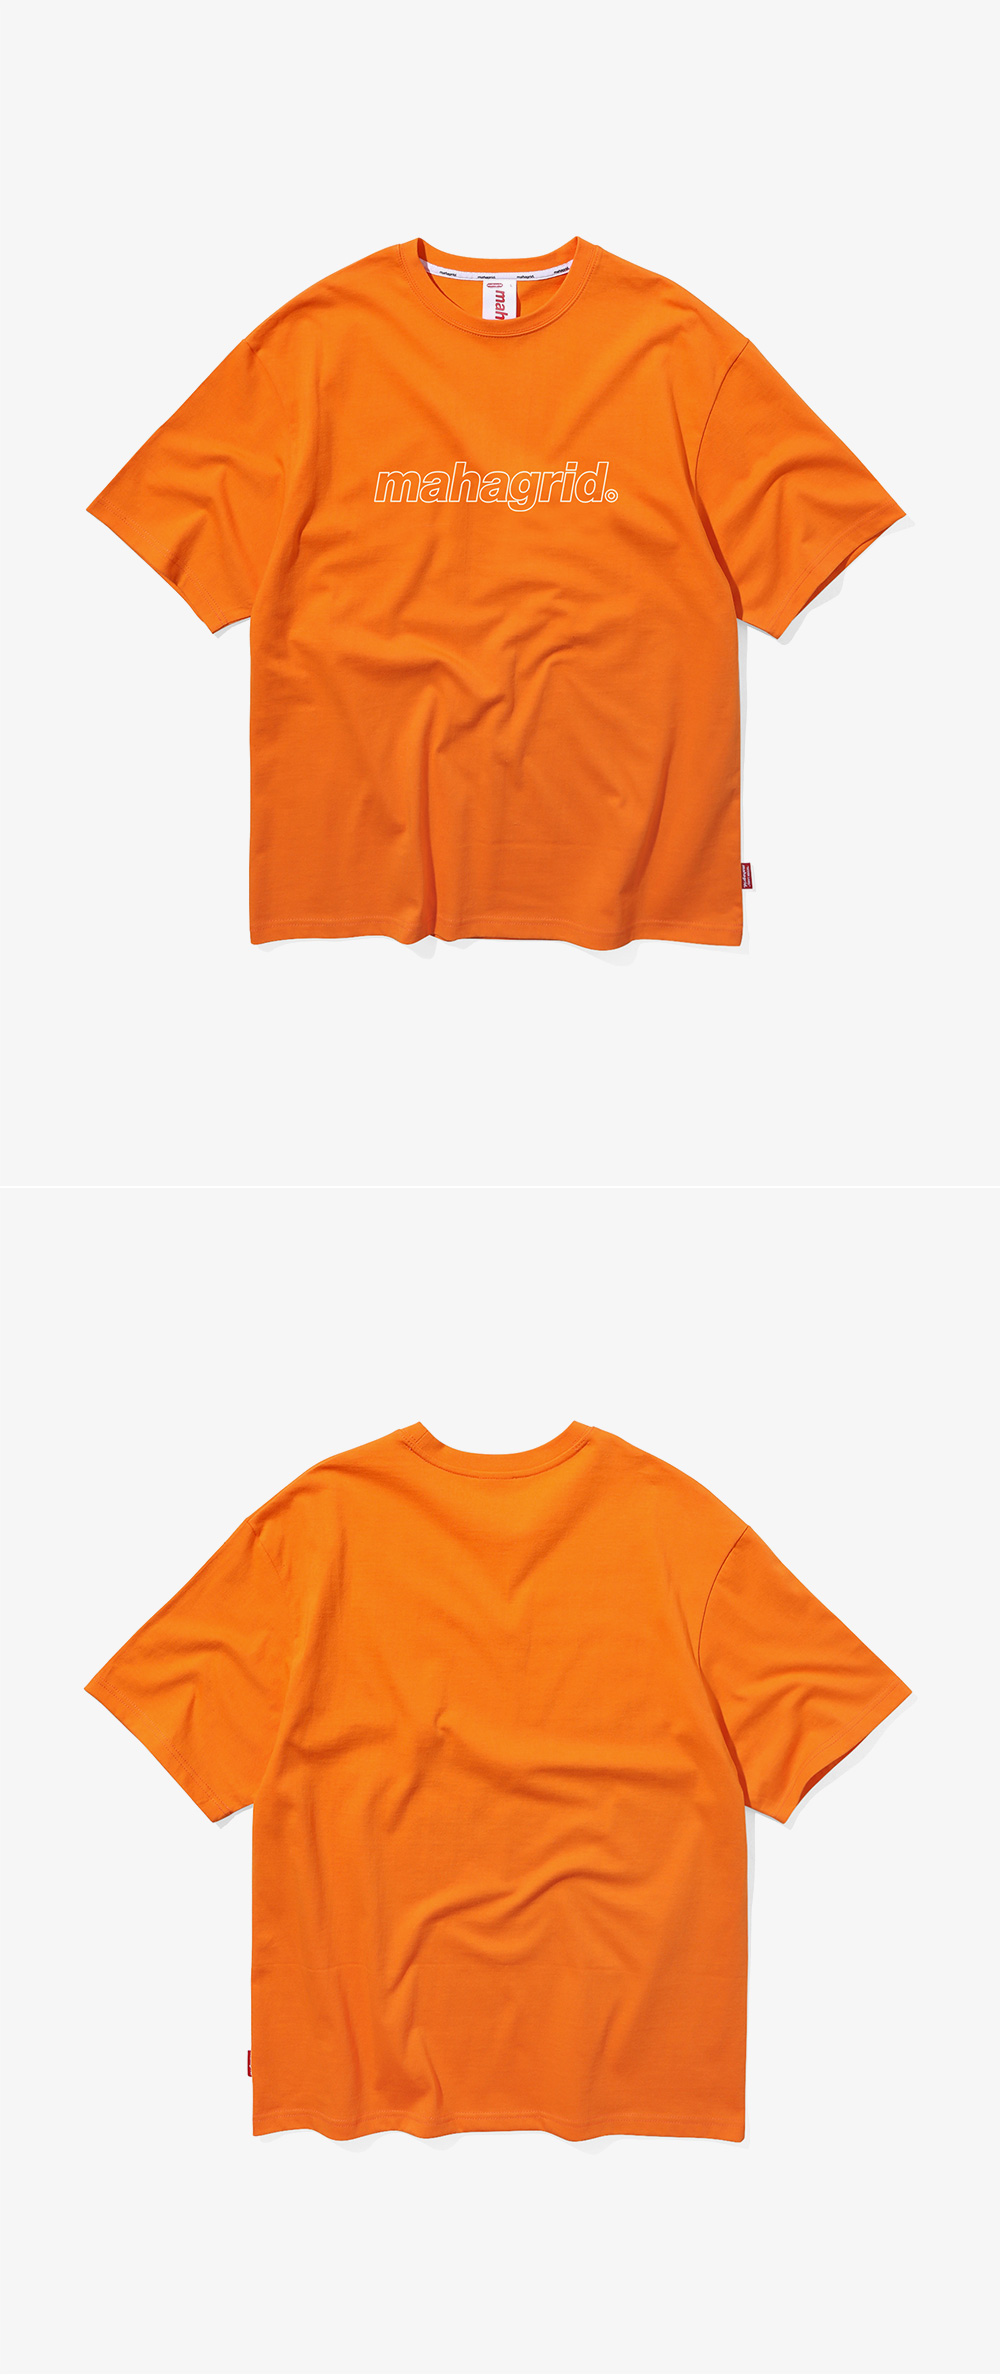 마하그리드(MAHAGRID) OUTLINE LOGO TEE ORANGE(MG1JMMT508A)